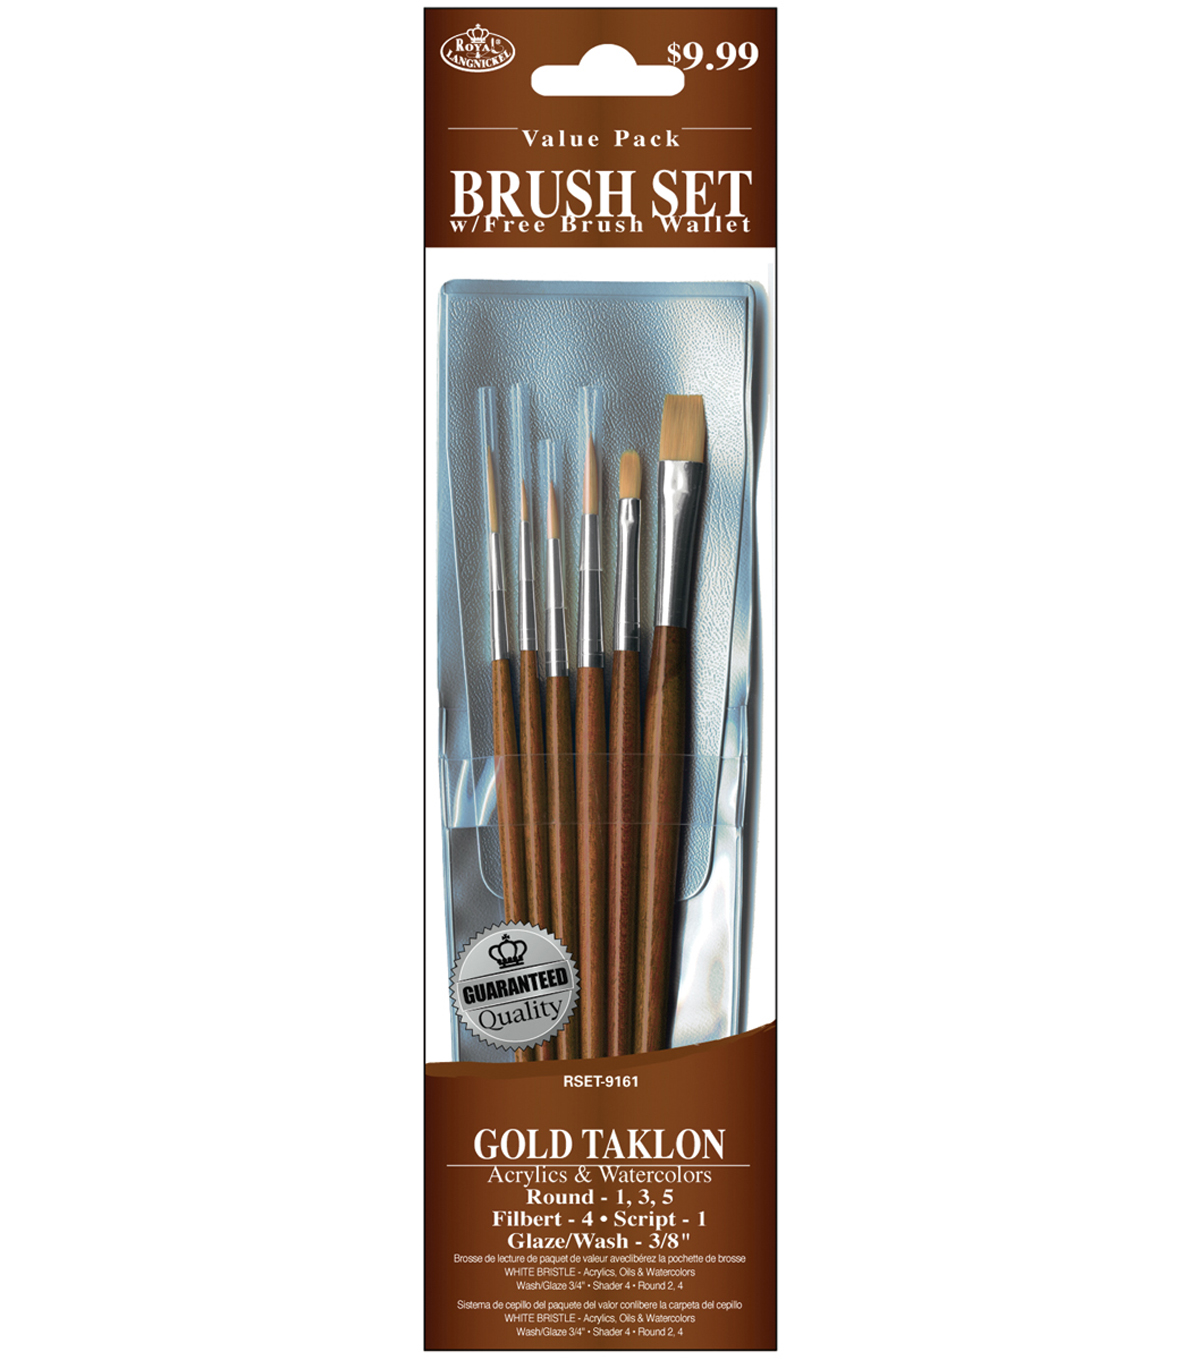 Gold Taklon Value Pack Brush Set 6 Pack